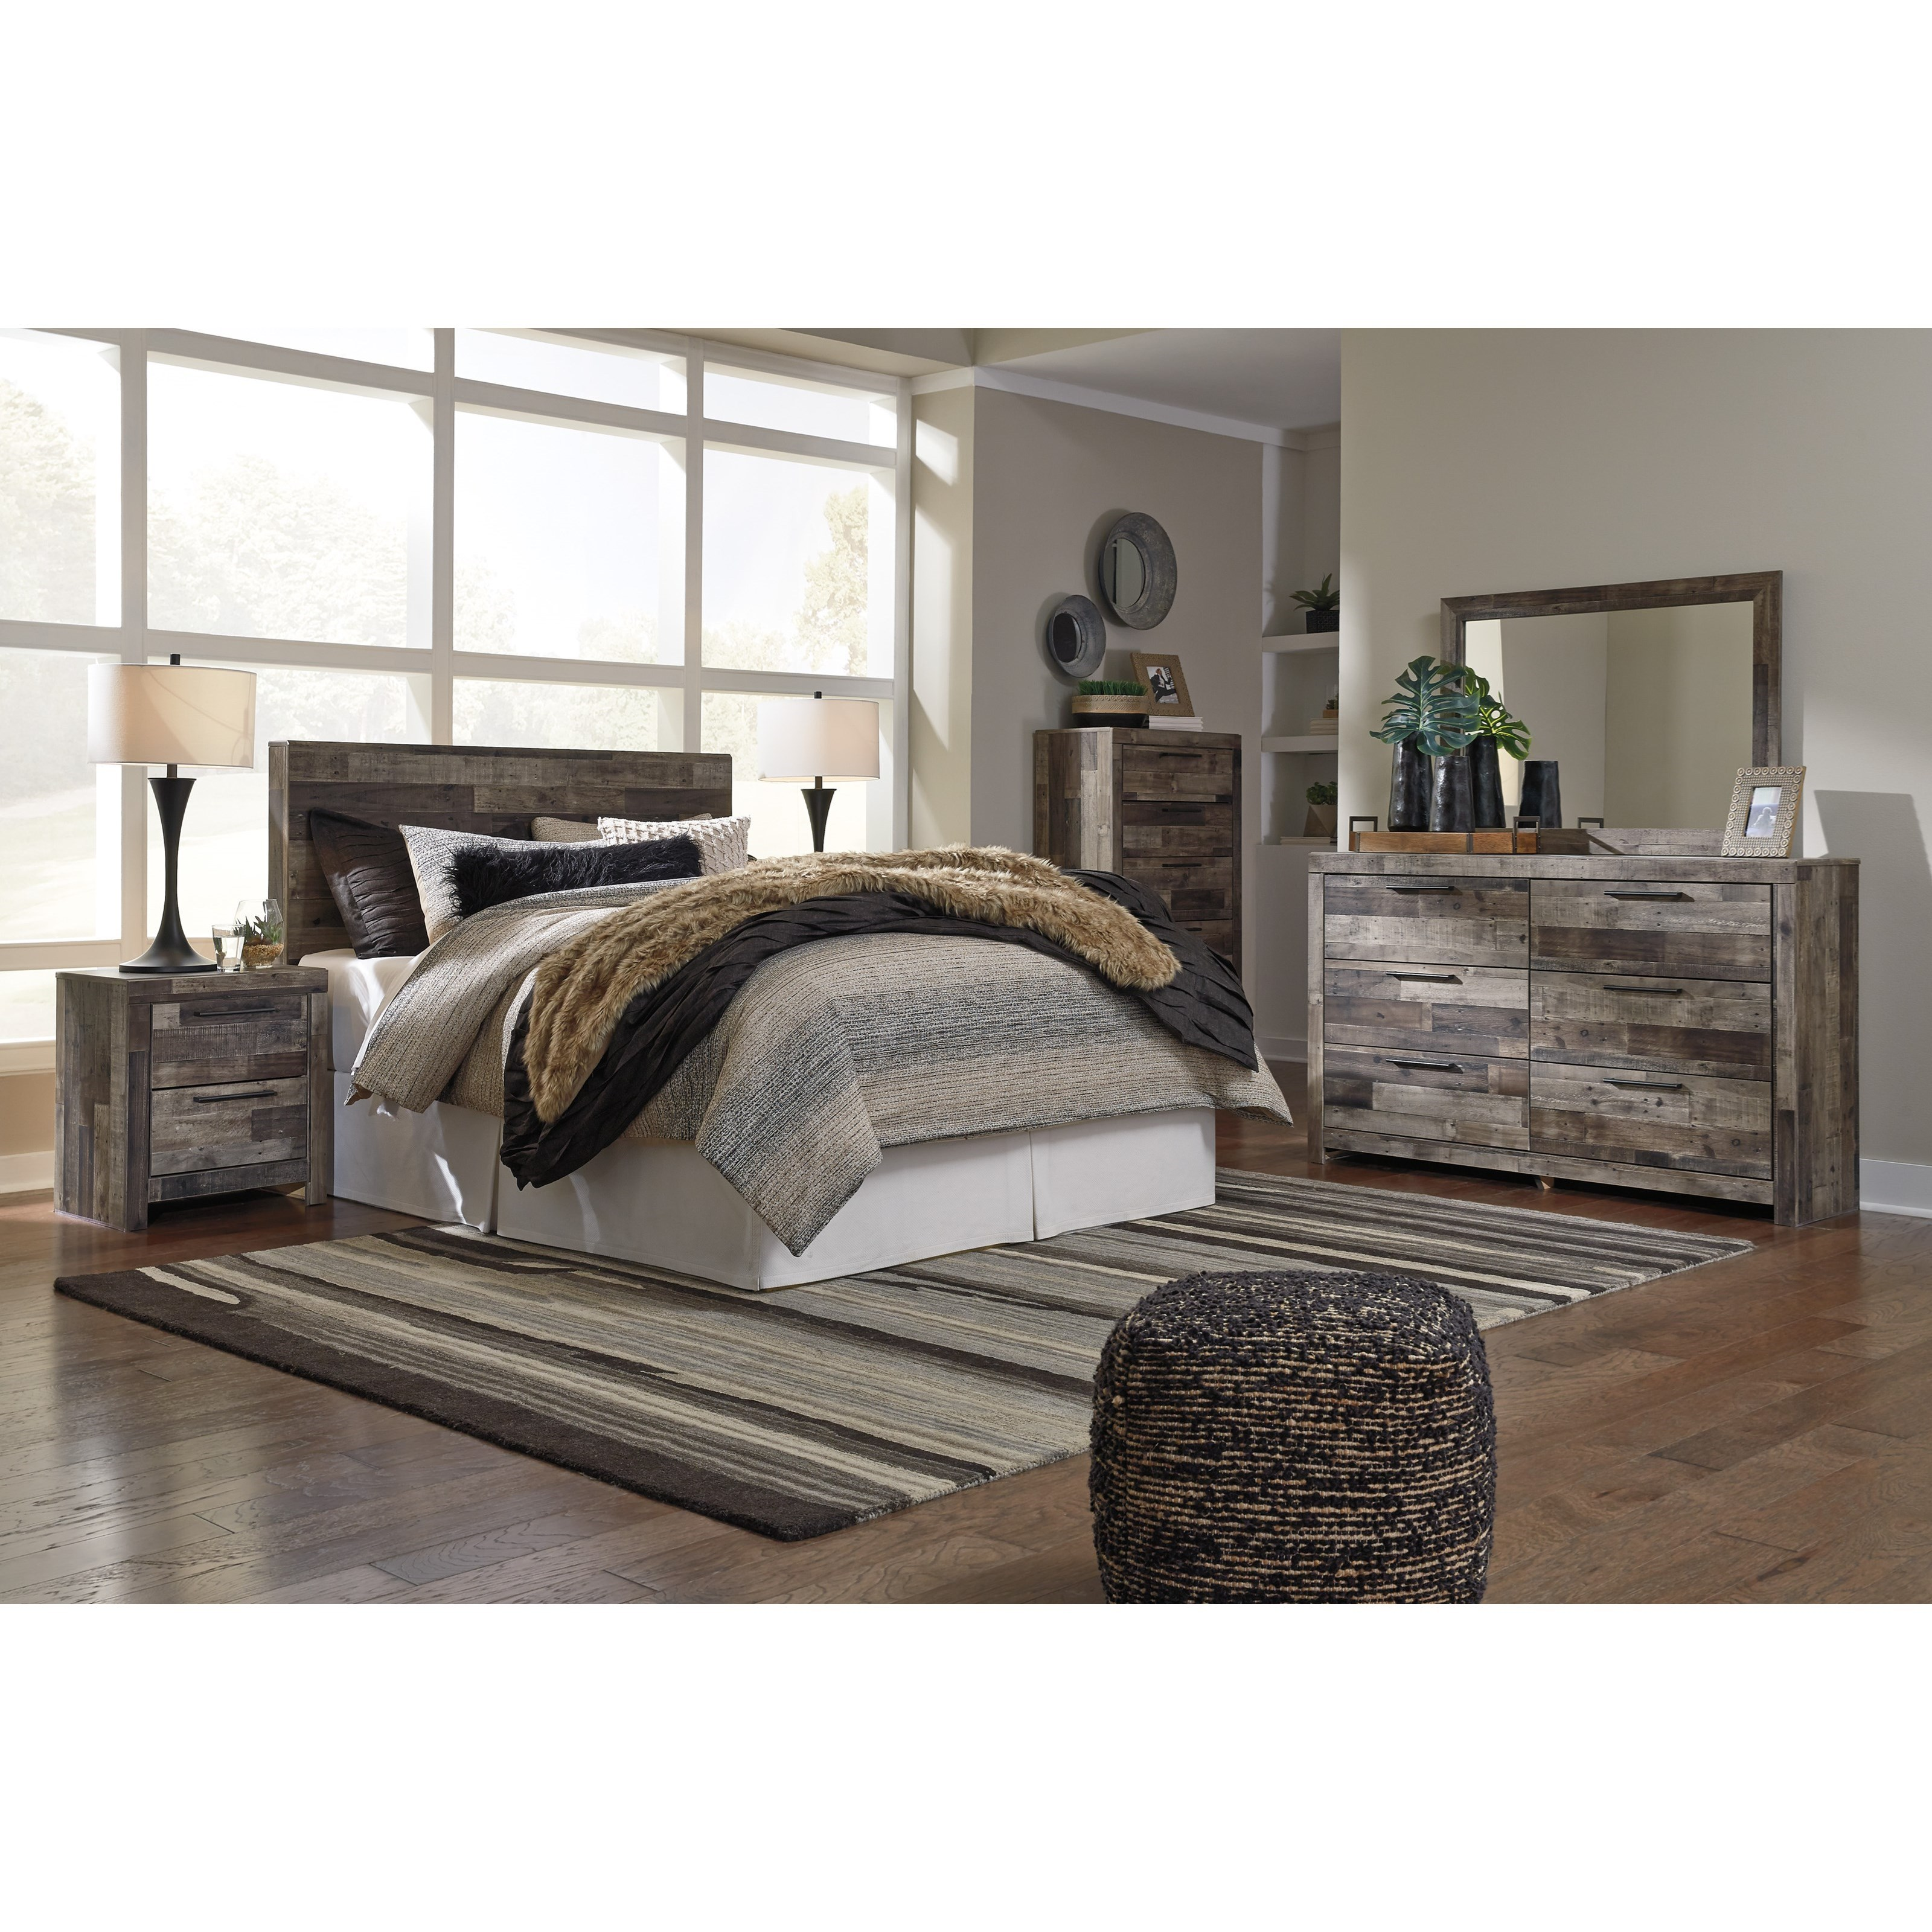 Derekson Full Bedroom Group by Benchcraft at Zak's Warehouse Clearance Center